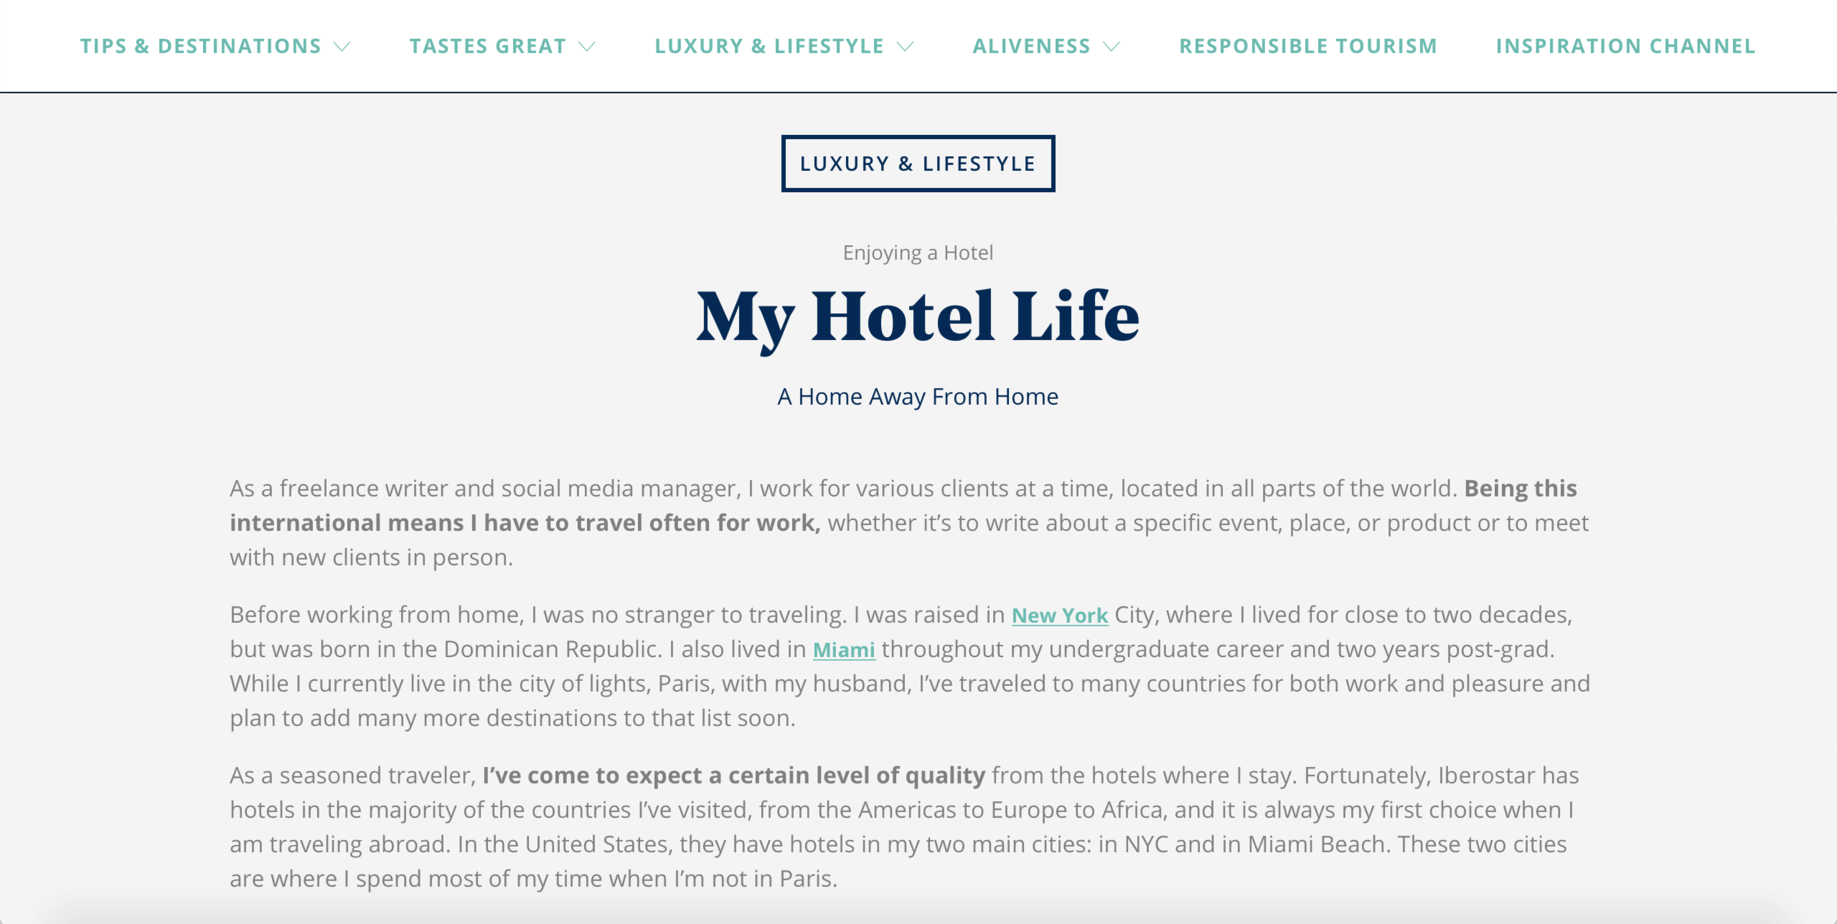 My Hotel Life for Iberostar Inspiration Guide